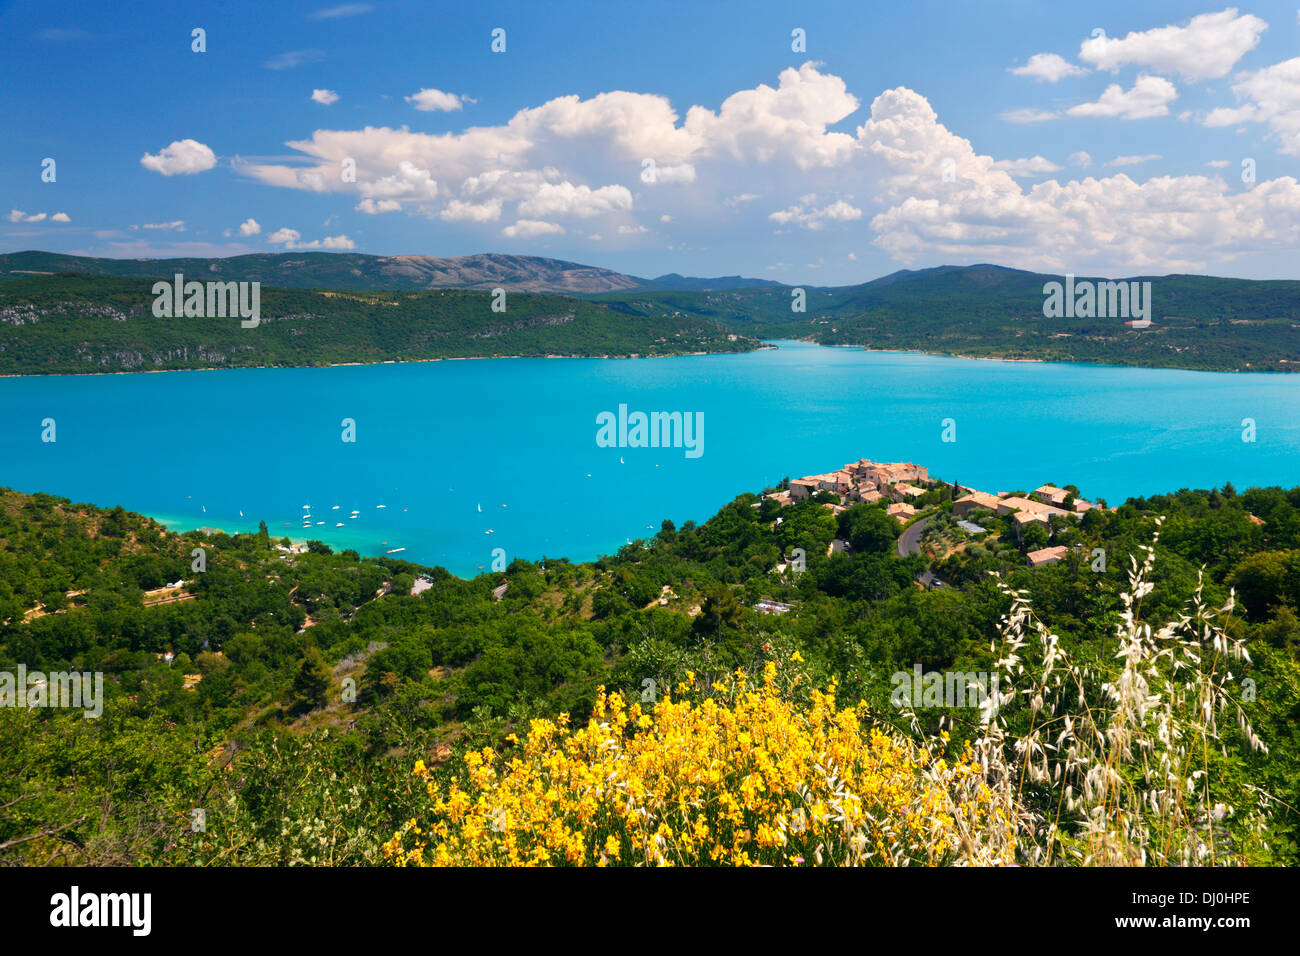 Sainte Croix du Verdon, France. Small town on the hill with a beautiful view. - Stock Image